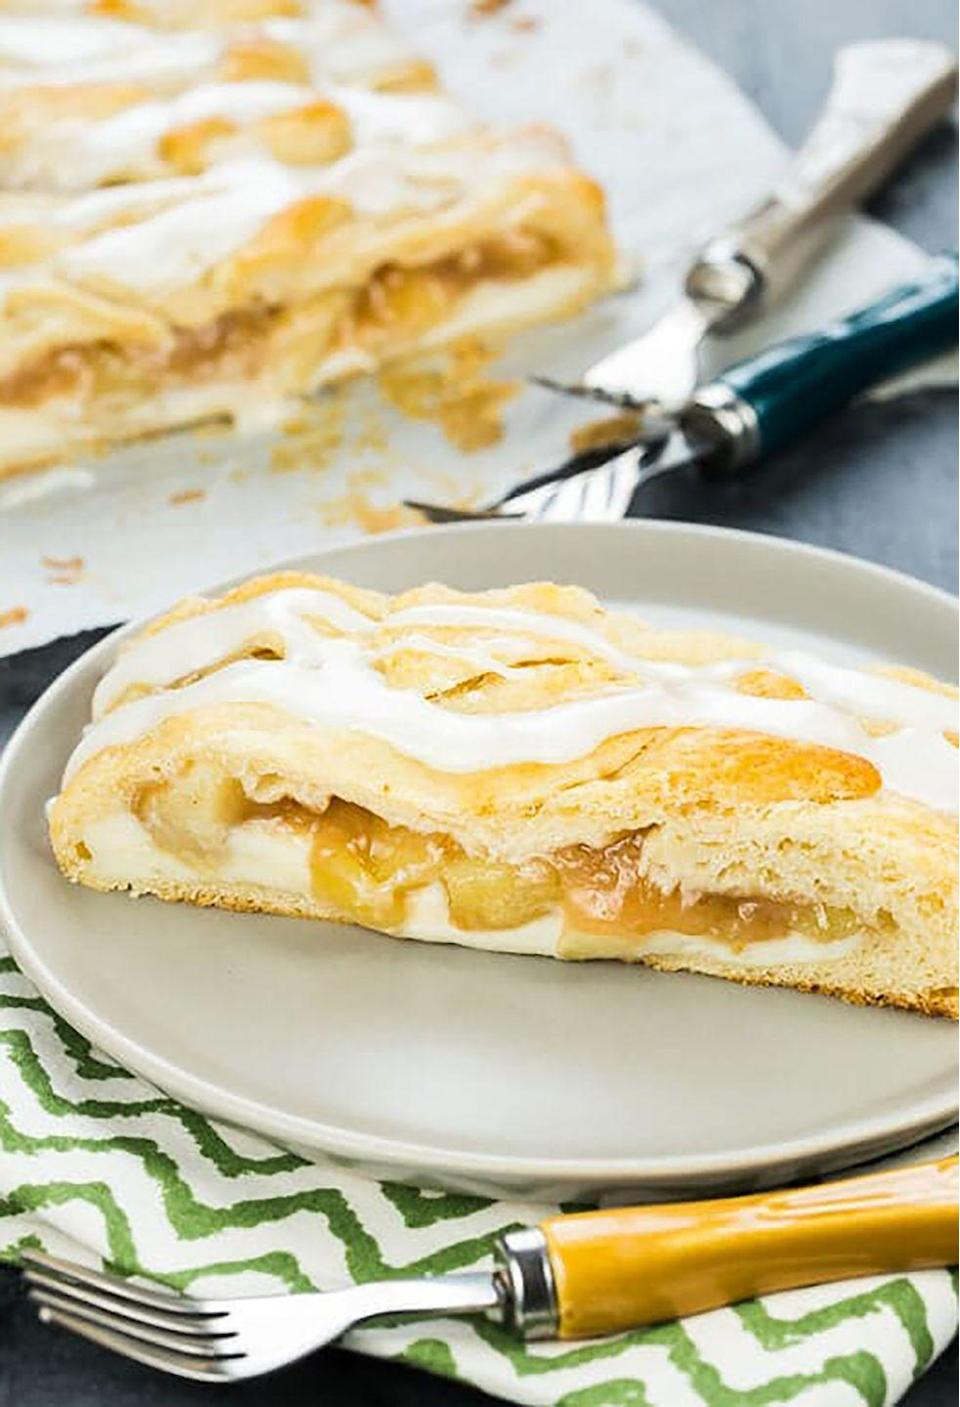 "<p>This danish makes for a sweet breakfast treat. </p><p><strong>Get the recipe at <a href=""https://www.garnishwithlemon.com/easy-apple-cream-cheese-danish/"" rel=""nofollow noopener"" target=""_blank"" data-ylk=""slk:Garnish With Lemon"" class=""link rapid-noclick-resp"">Garnish With Lemon</a>. </strong></p>"